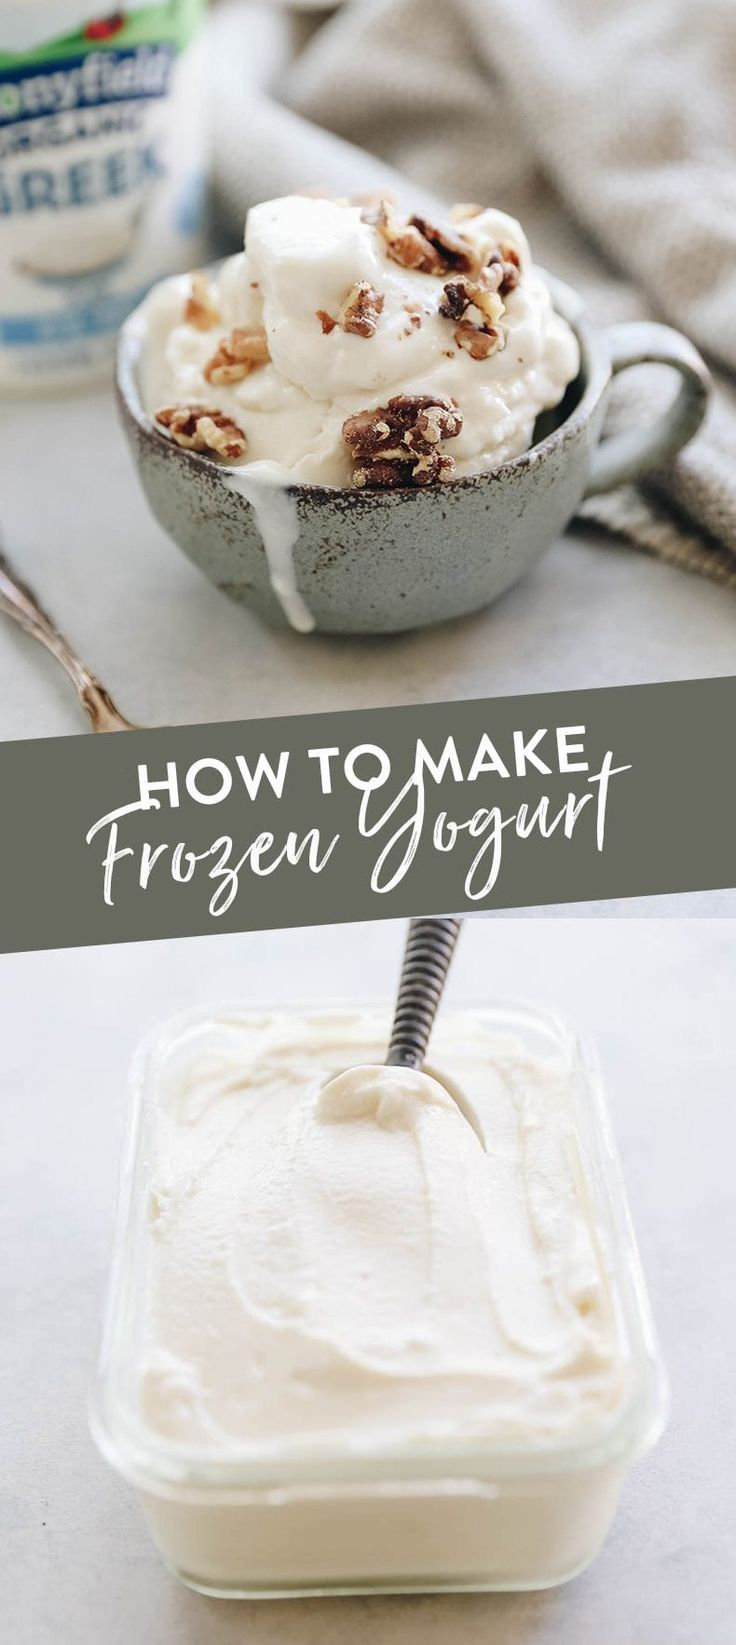 How To Make Frozen Yogurt | Just 3 Ingredients! - The Healthy Maven  - Frozen yogurt -